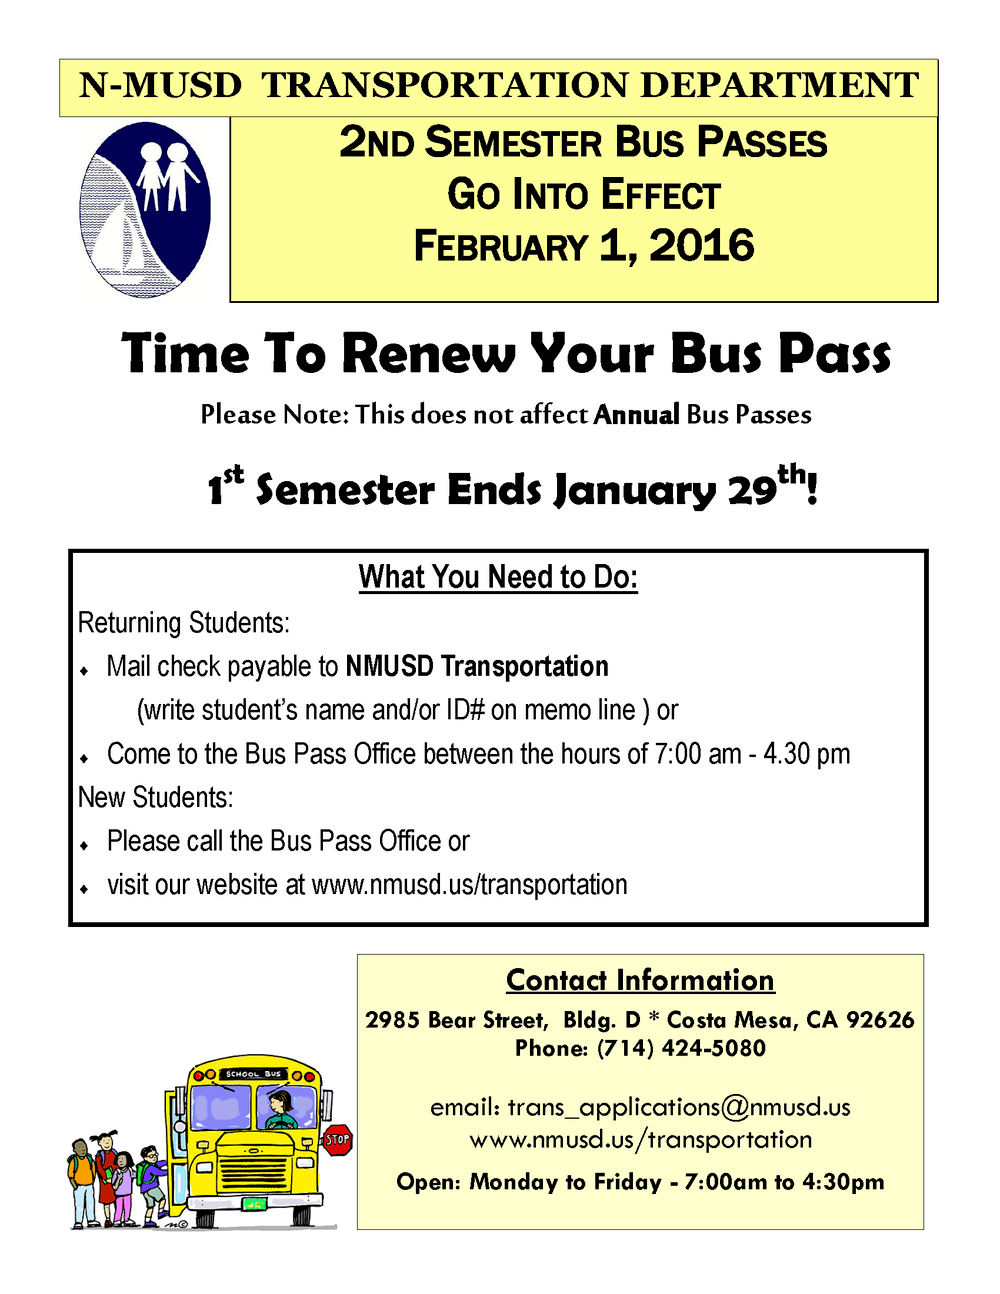 2nd semester flyer 1_7_16_Page_1.png